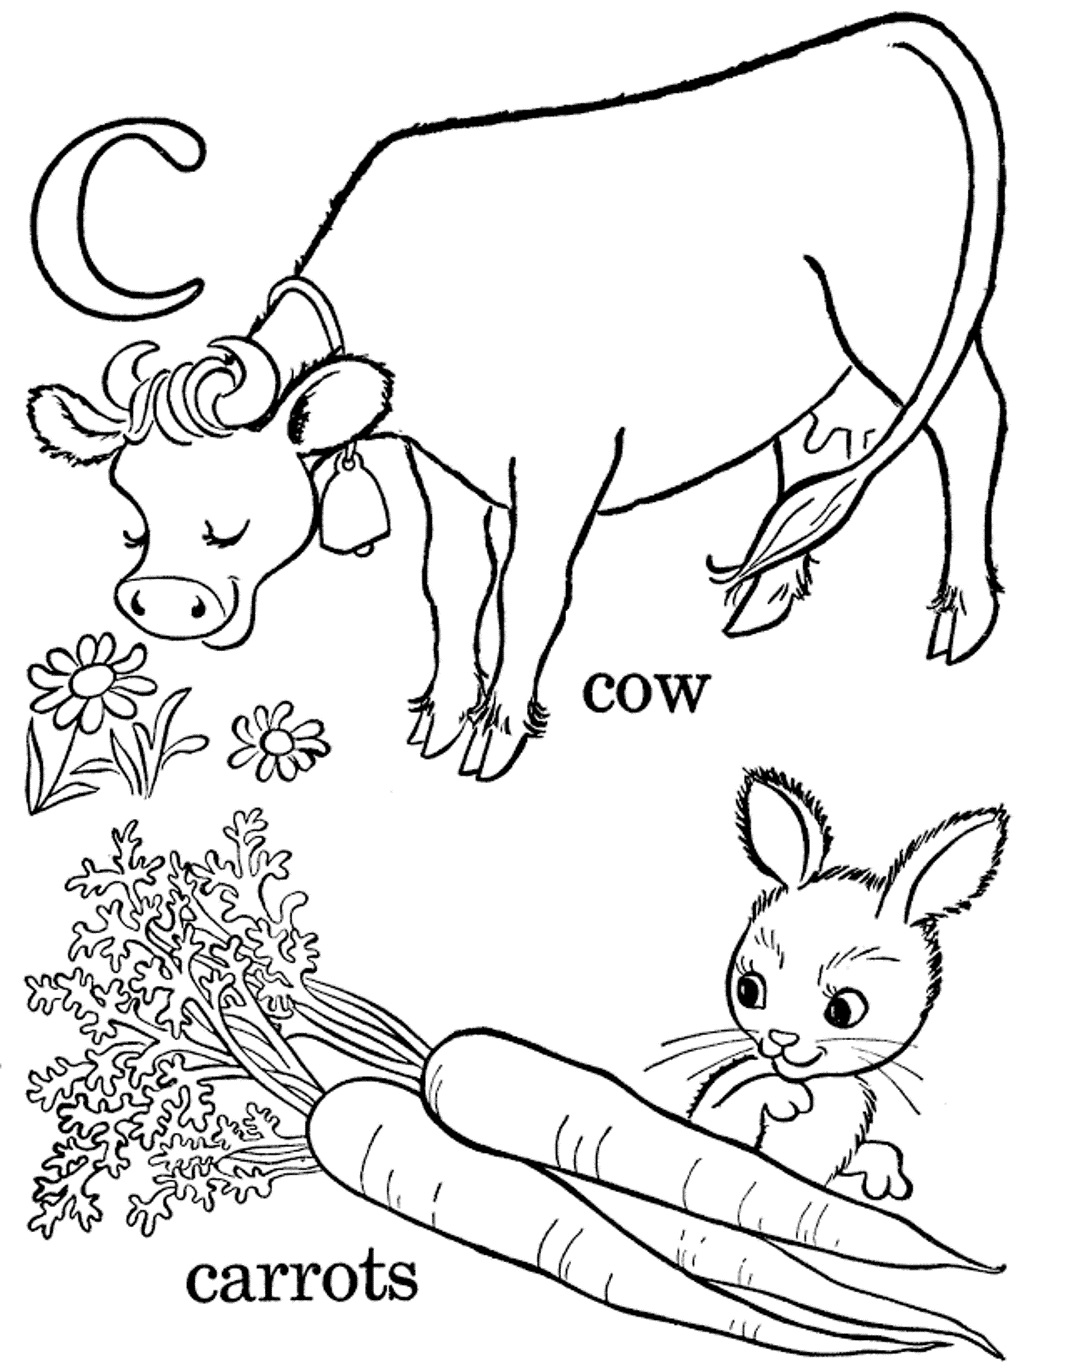 Cow And Carrot Alphabet Coloring Pages